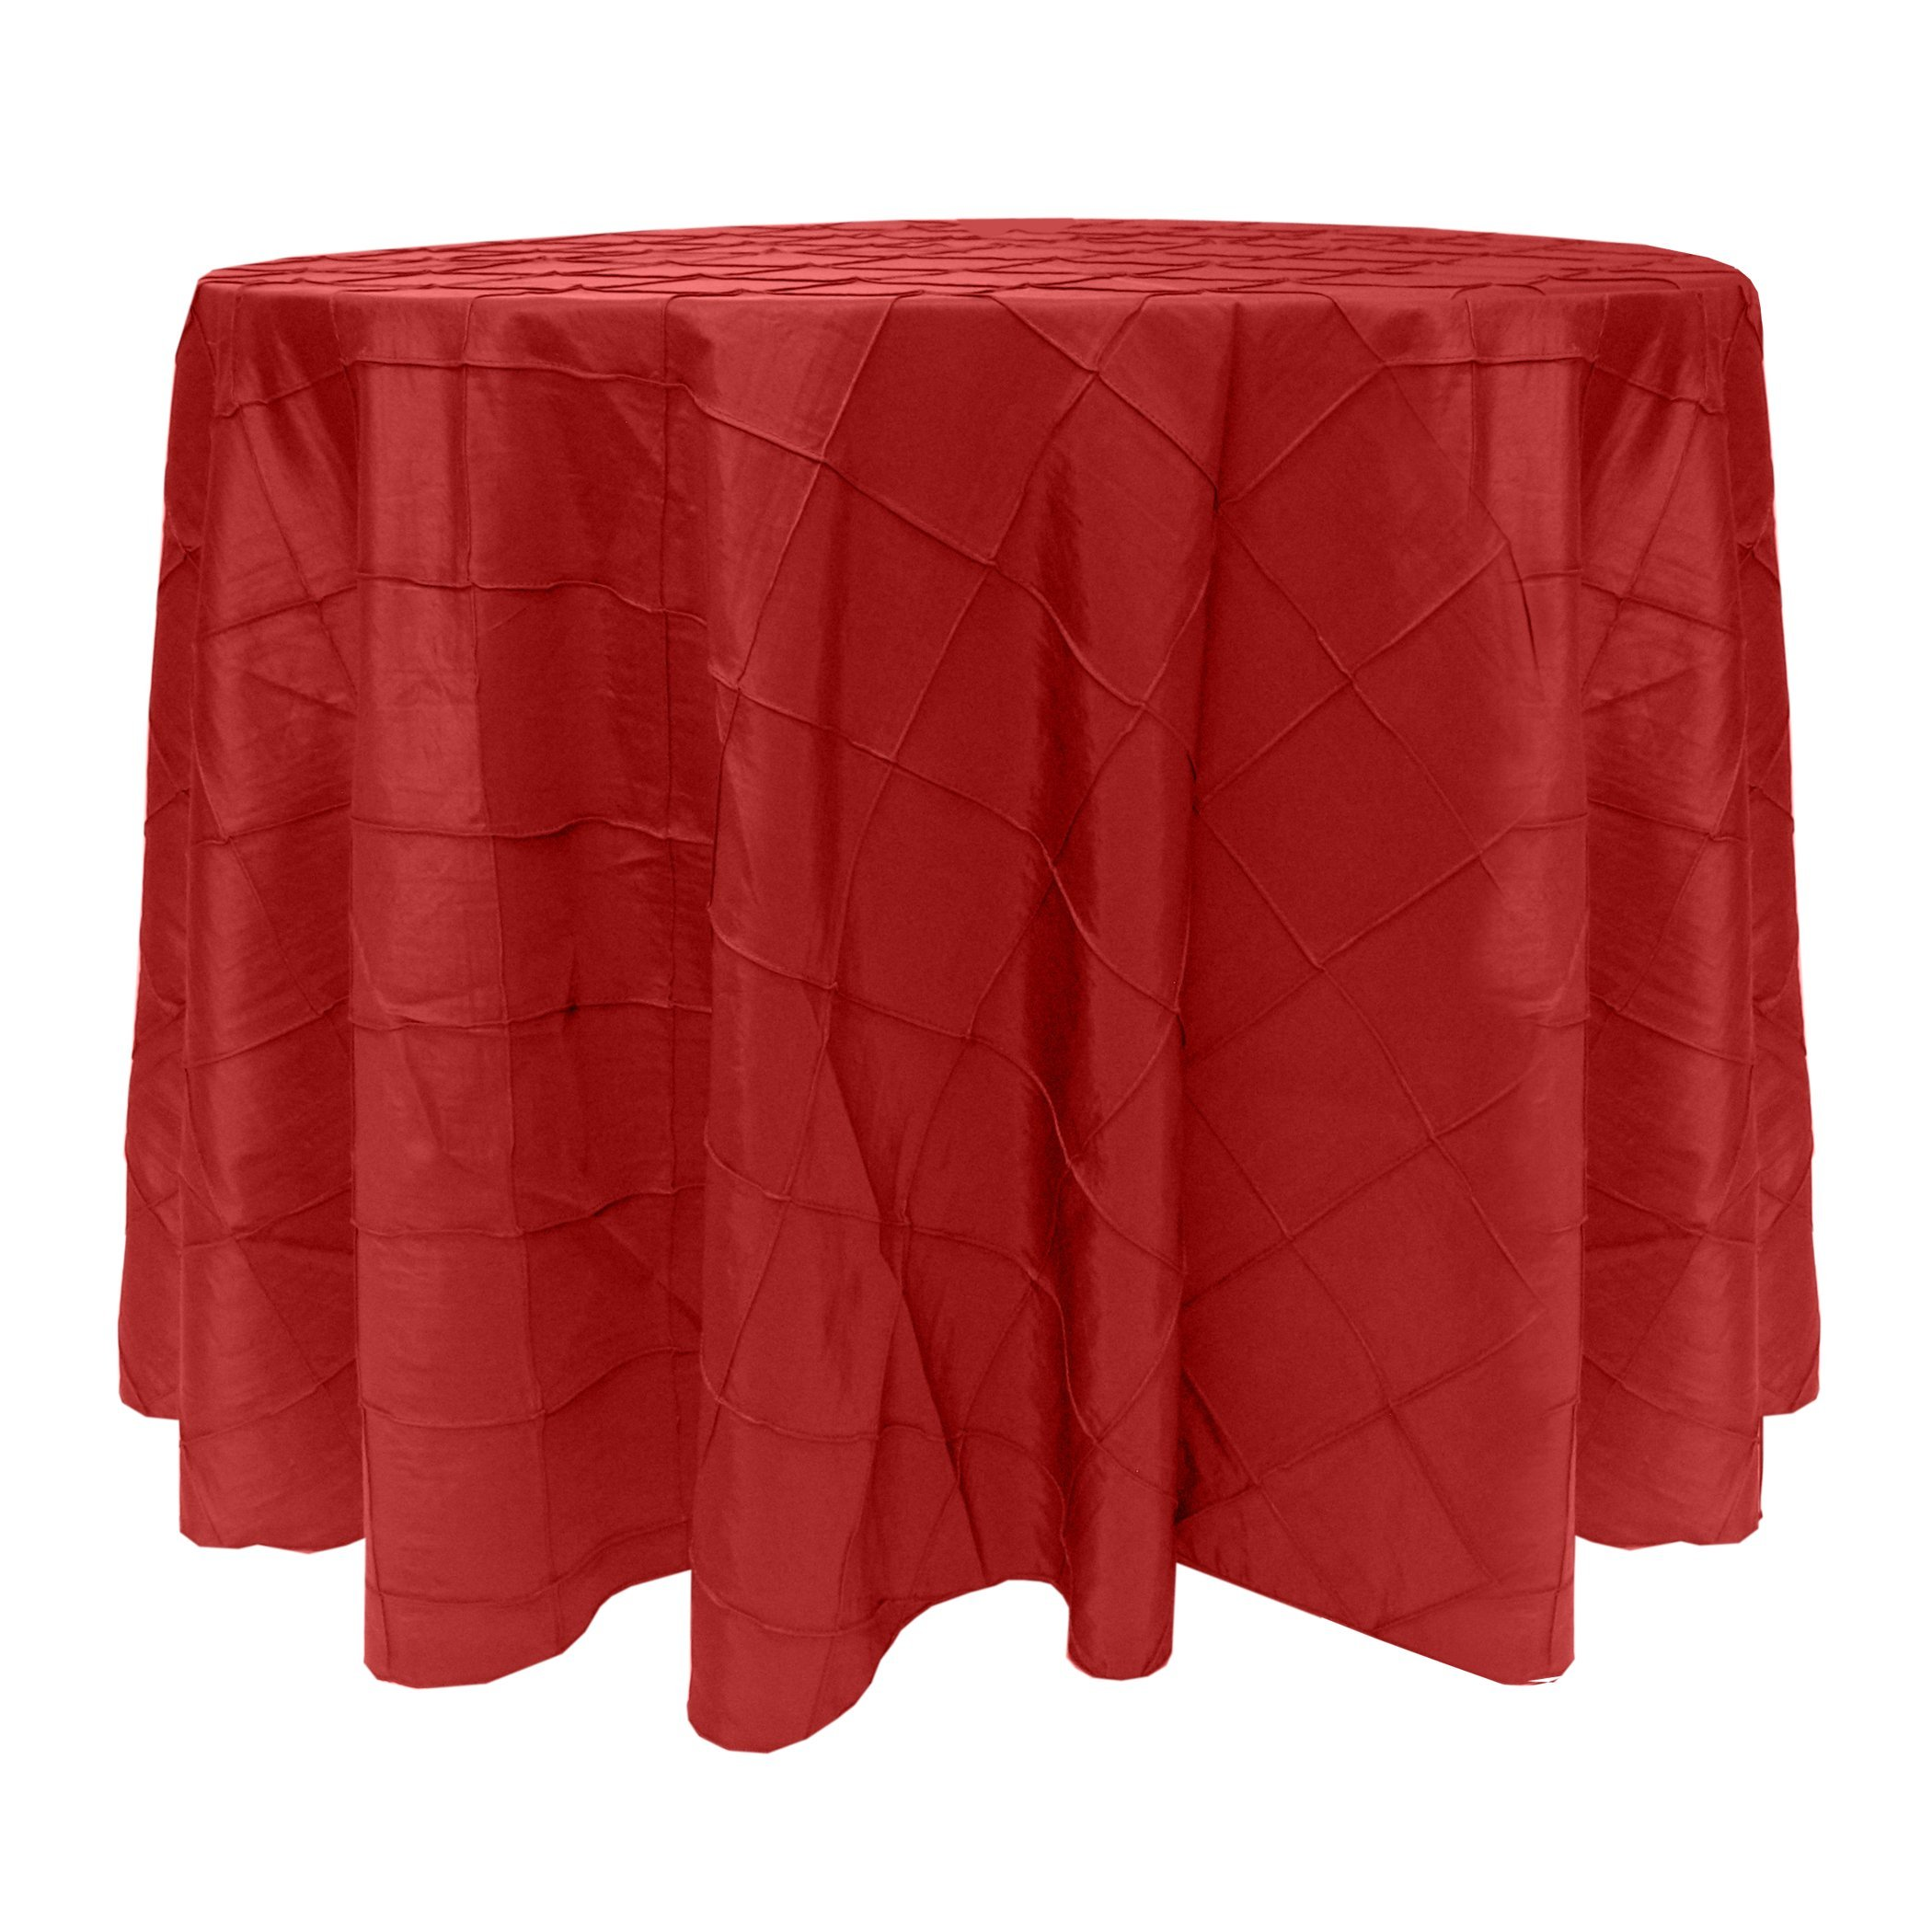 Ultimate Textile Embroidered Pintuck Taffeta 120-Inch Round Tablecloth Holiday Christmas Red